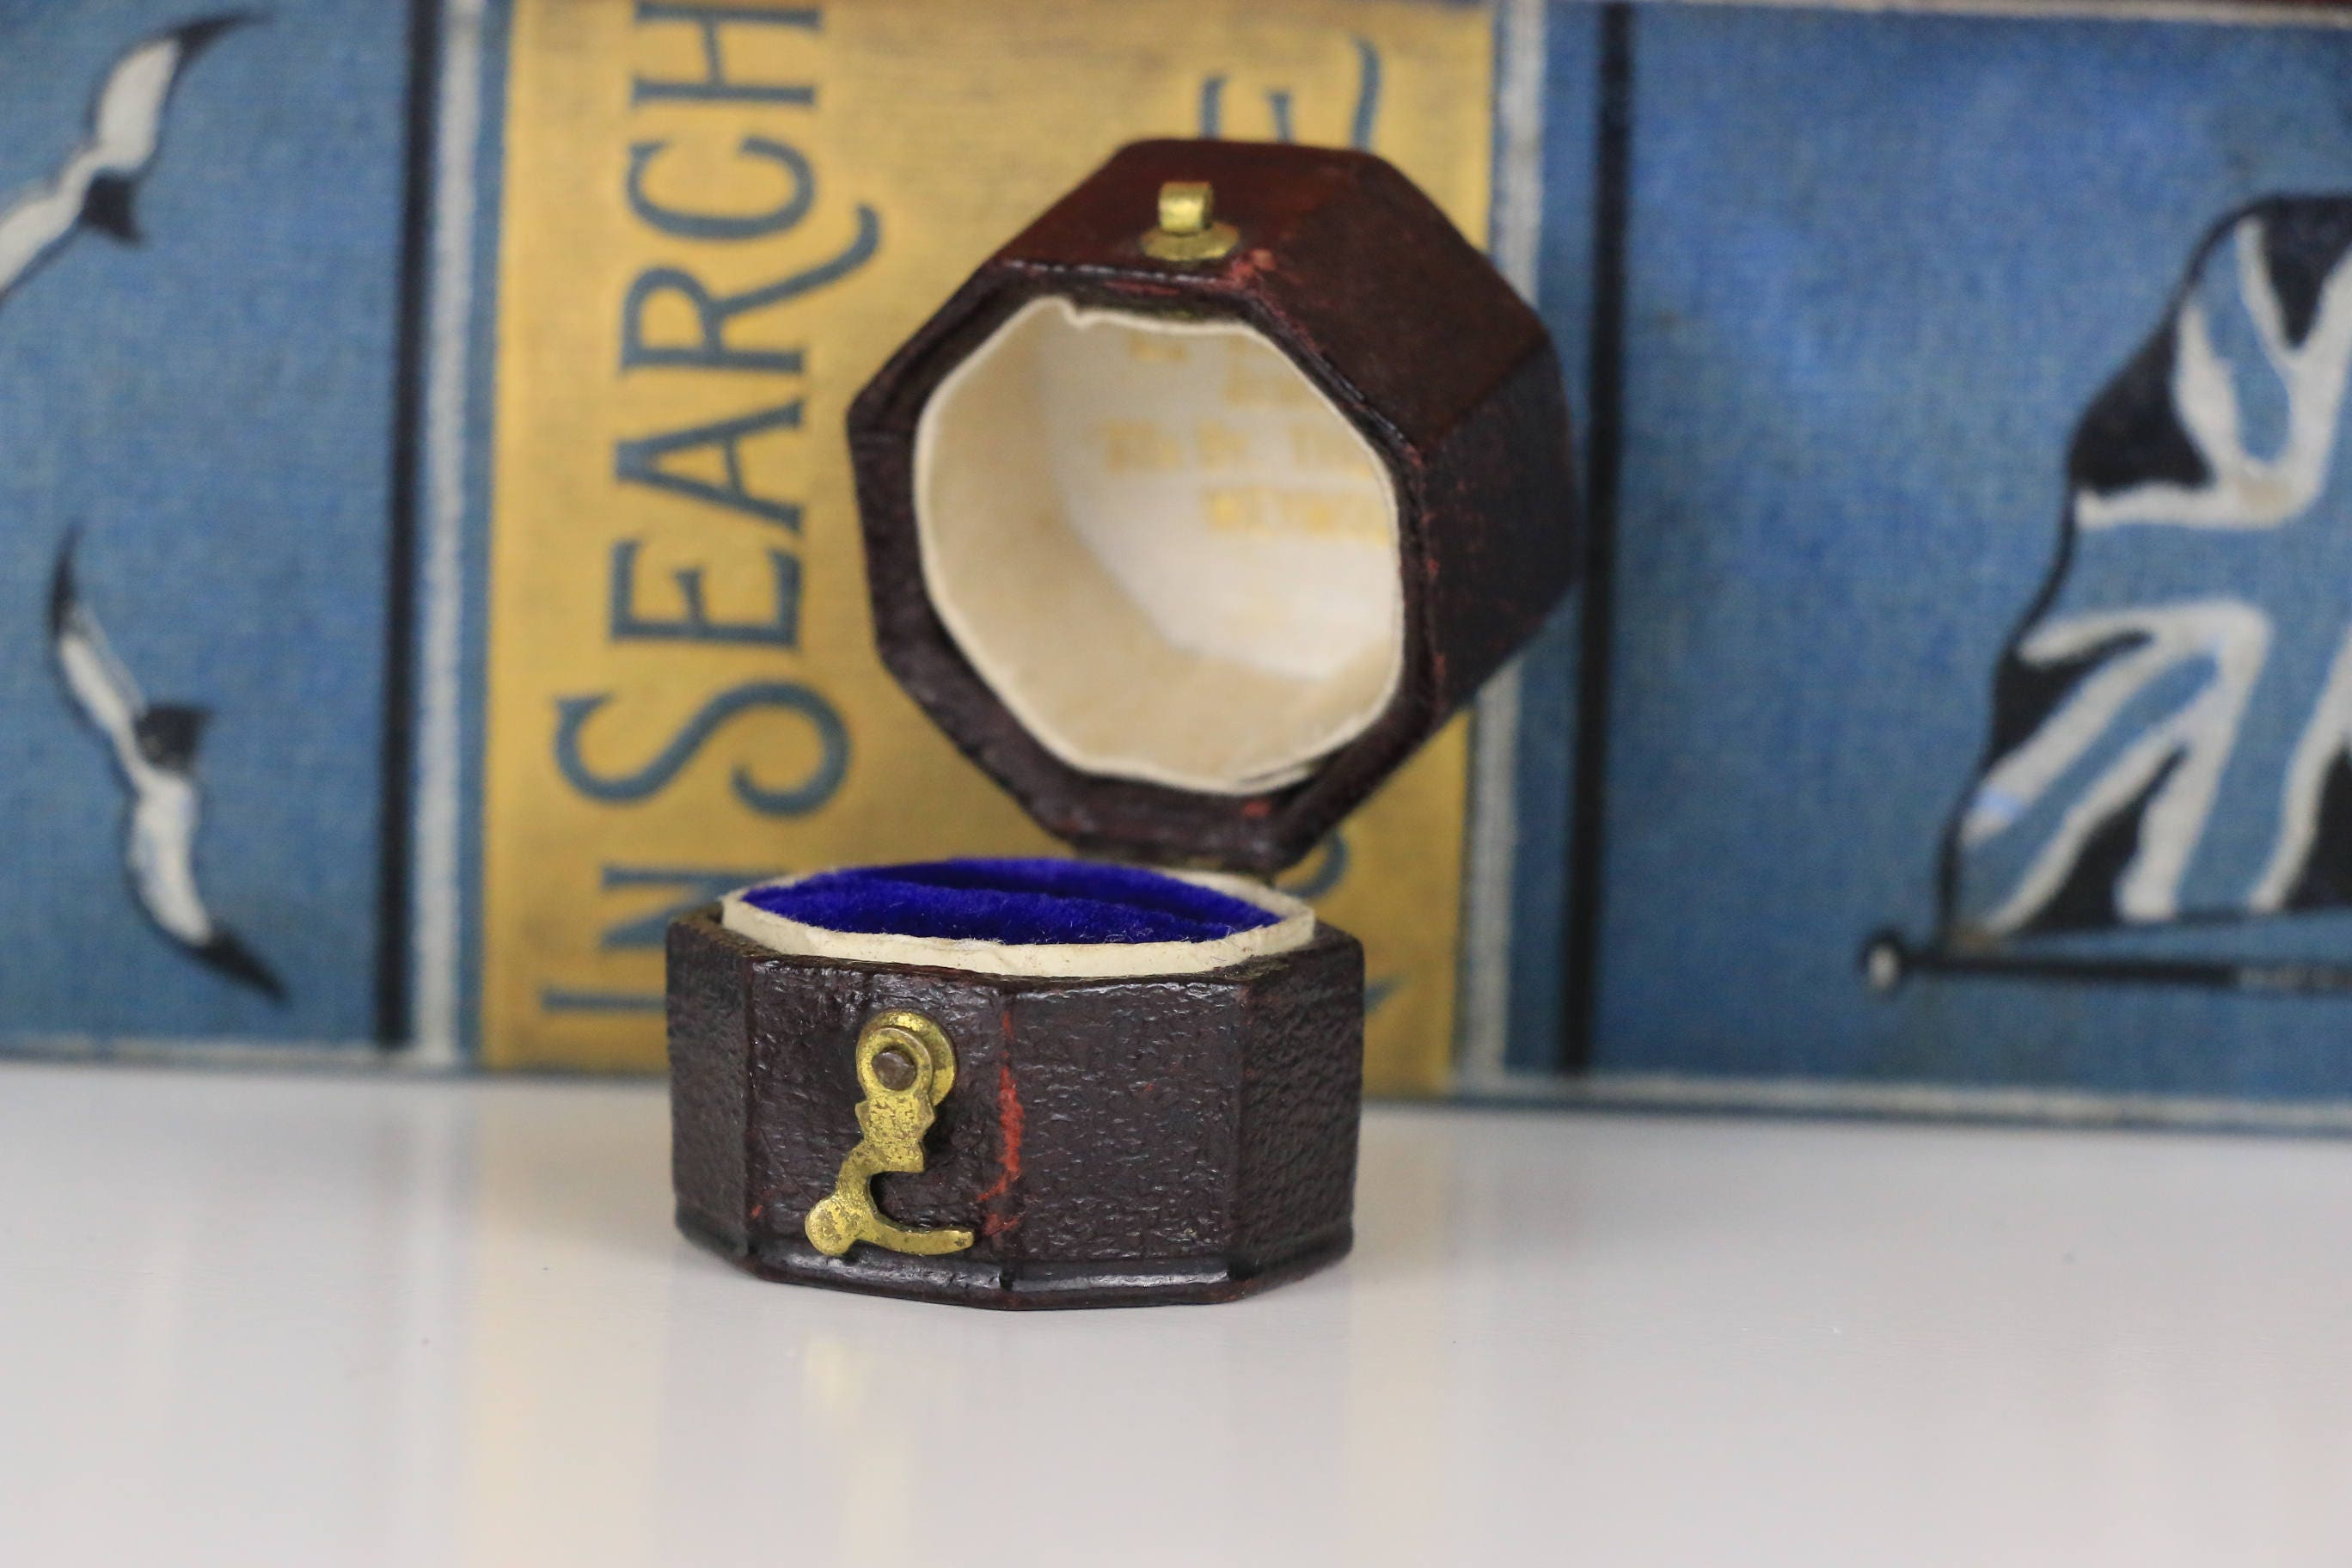 Antique Ring Box Octagonal Engagement or Wedding Ring Box with Gold Lettering and Blue Interior